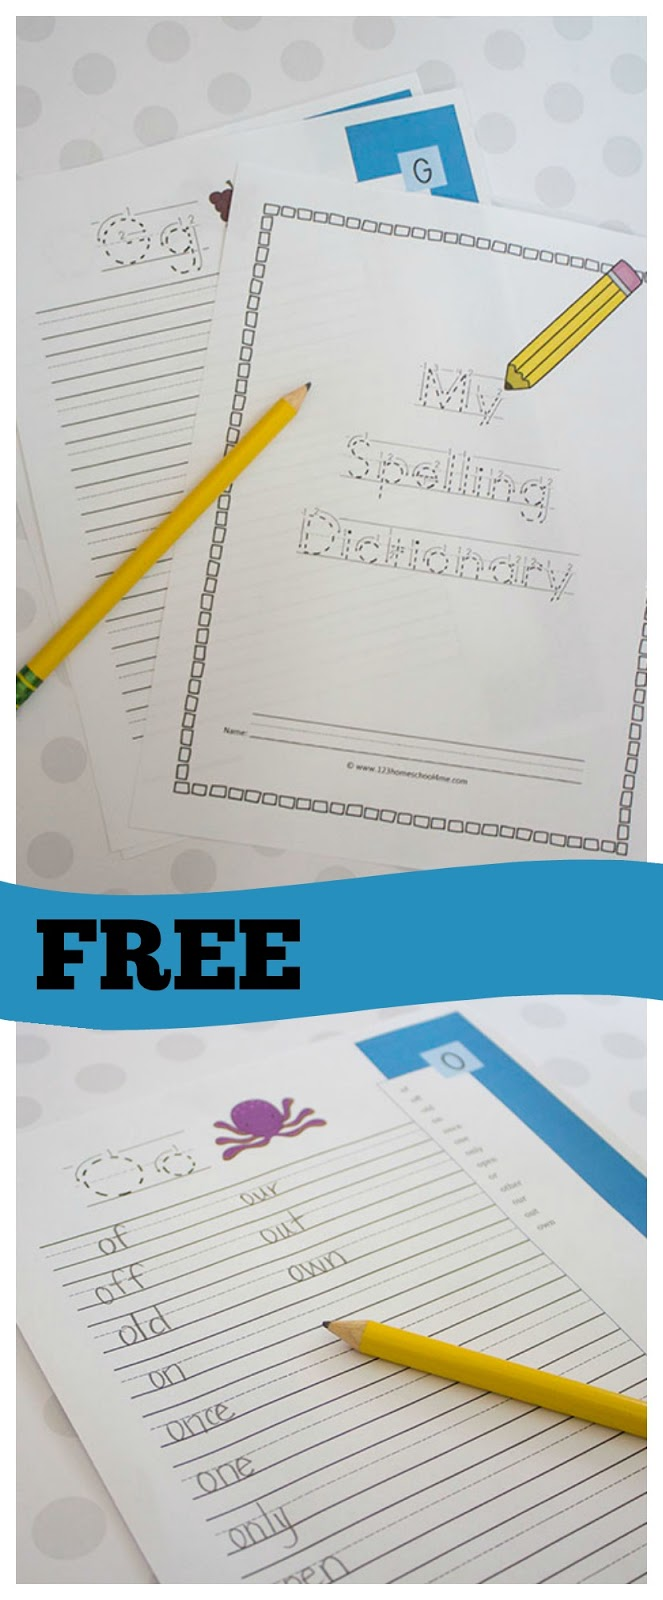 FREE My Spelling Dictionary with Ruled Lines